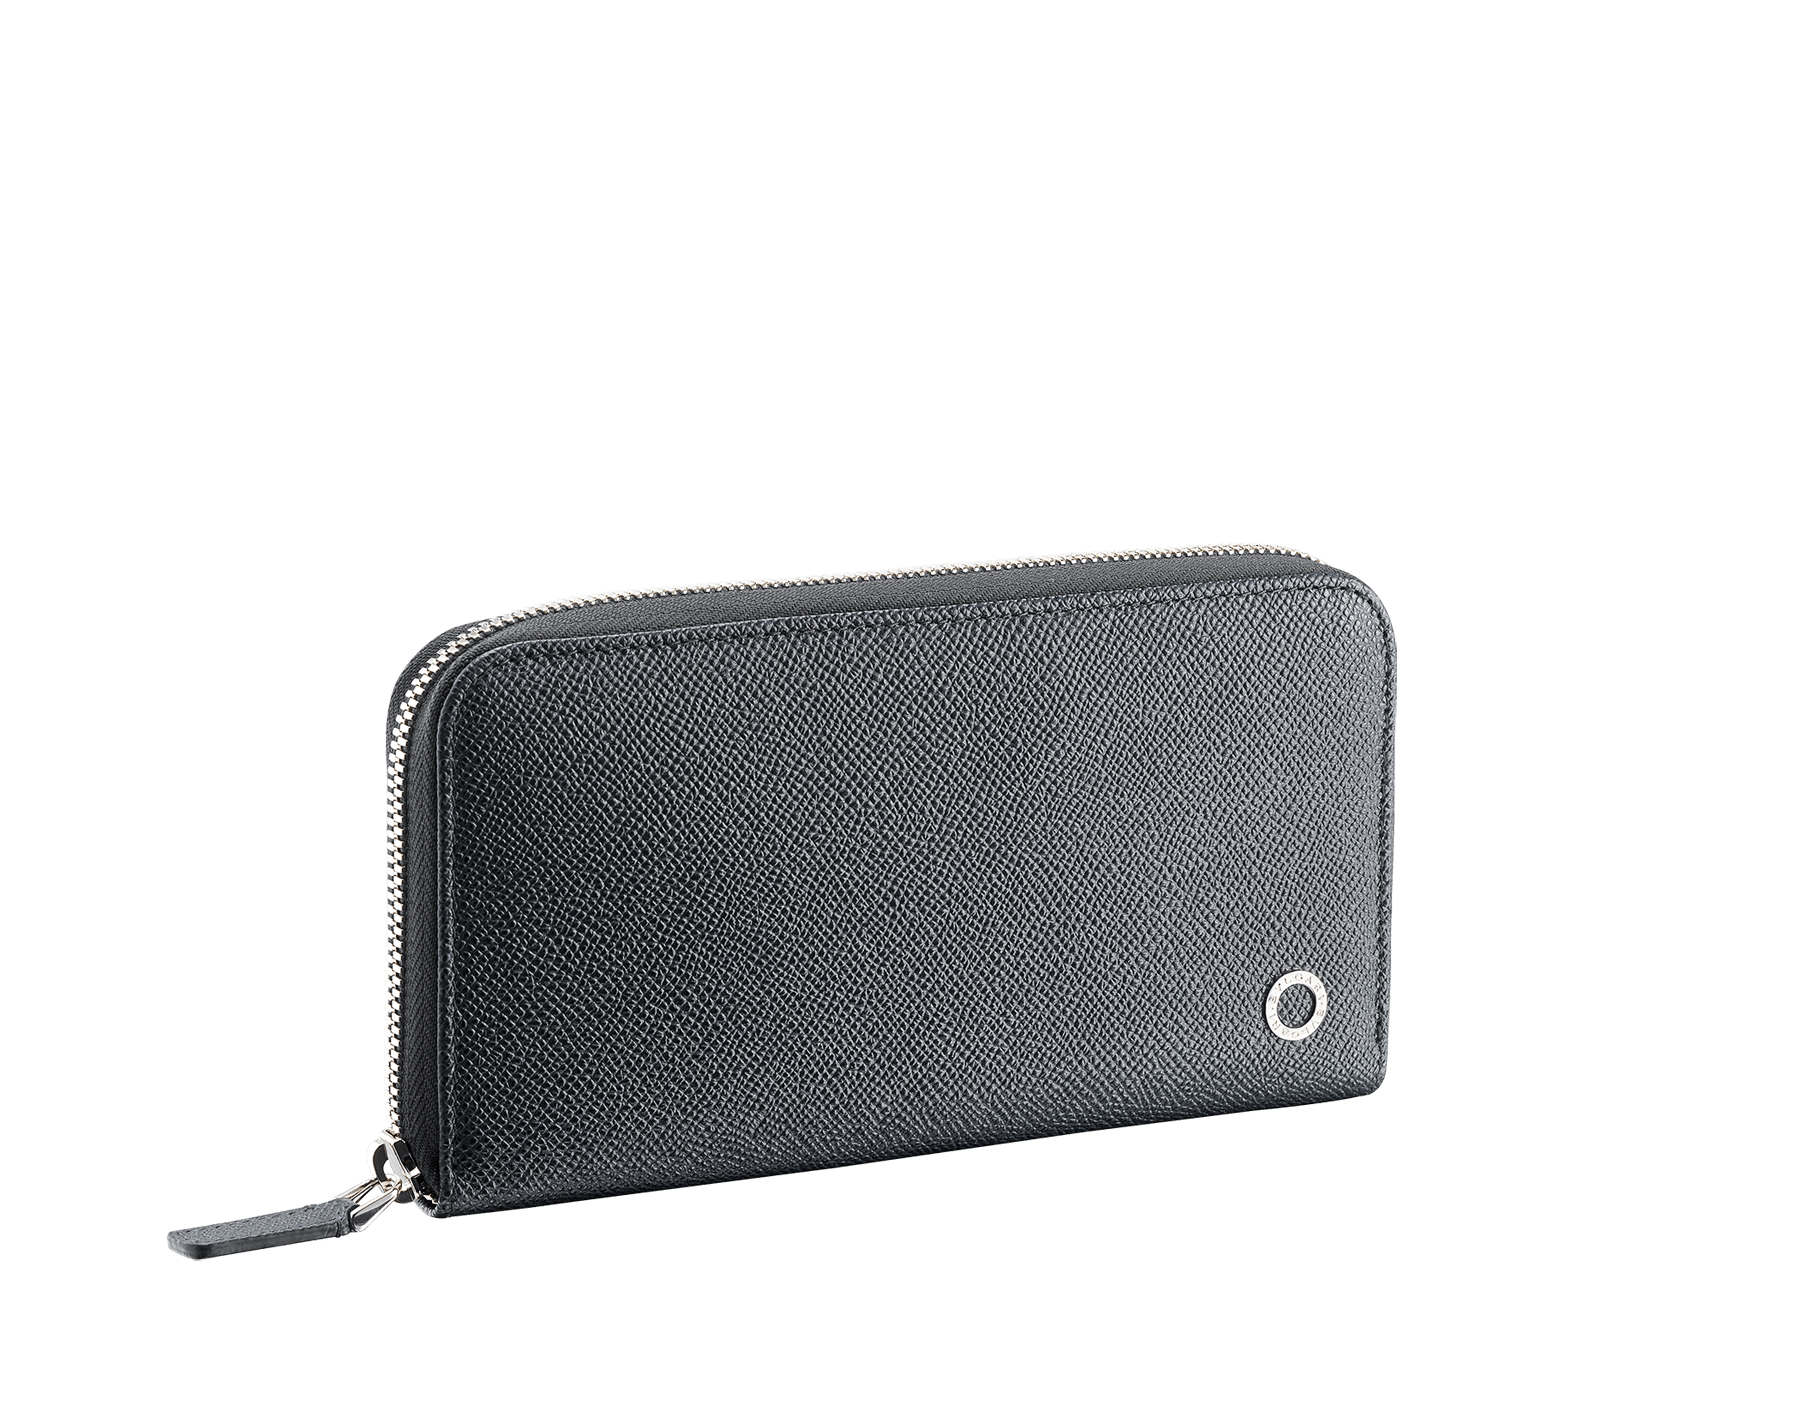 BVLGARI BVLGARI zipped wallet for men in charcoal diamond and emerald green grain calf leather and charcoal diamond nappa lining. Iconic logo décor in palladium plated brass. 289101 image 1